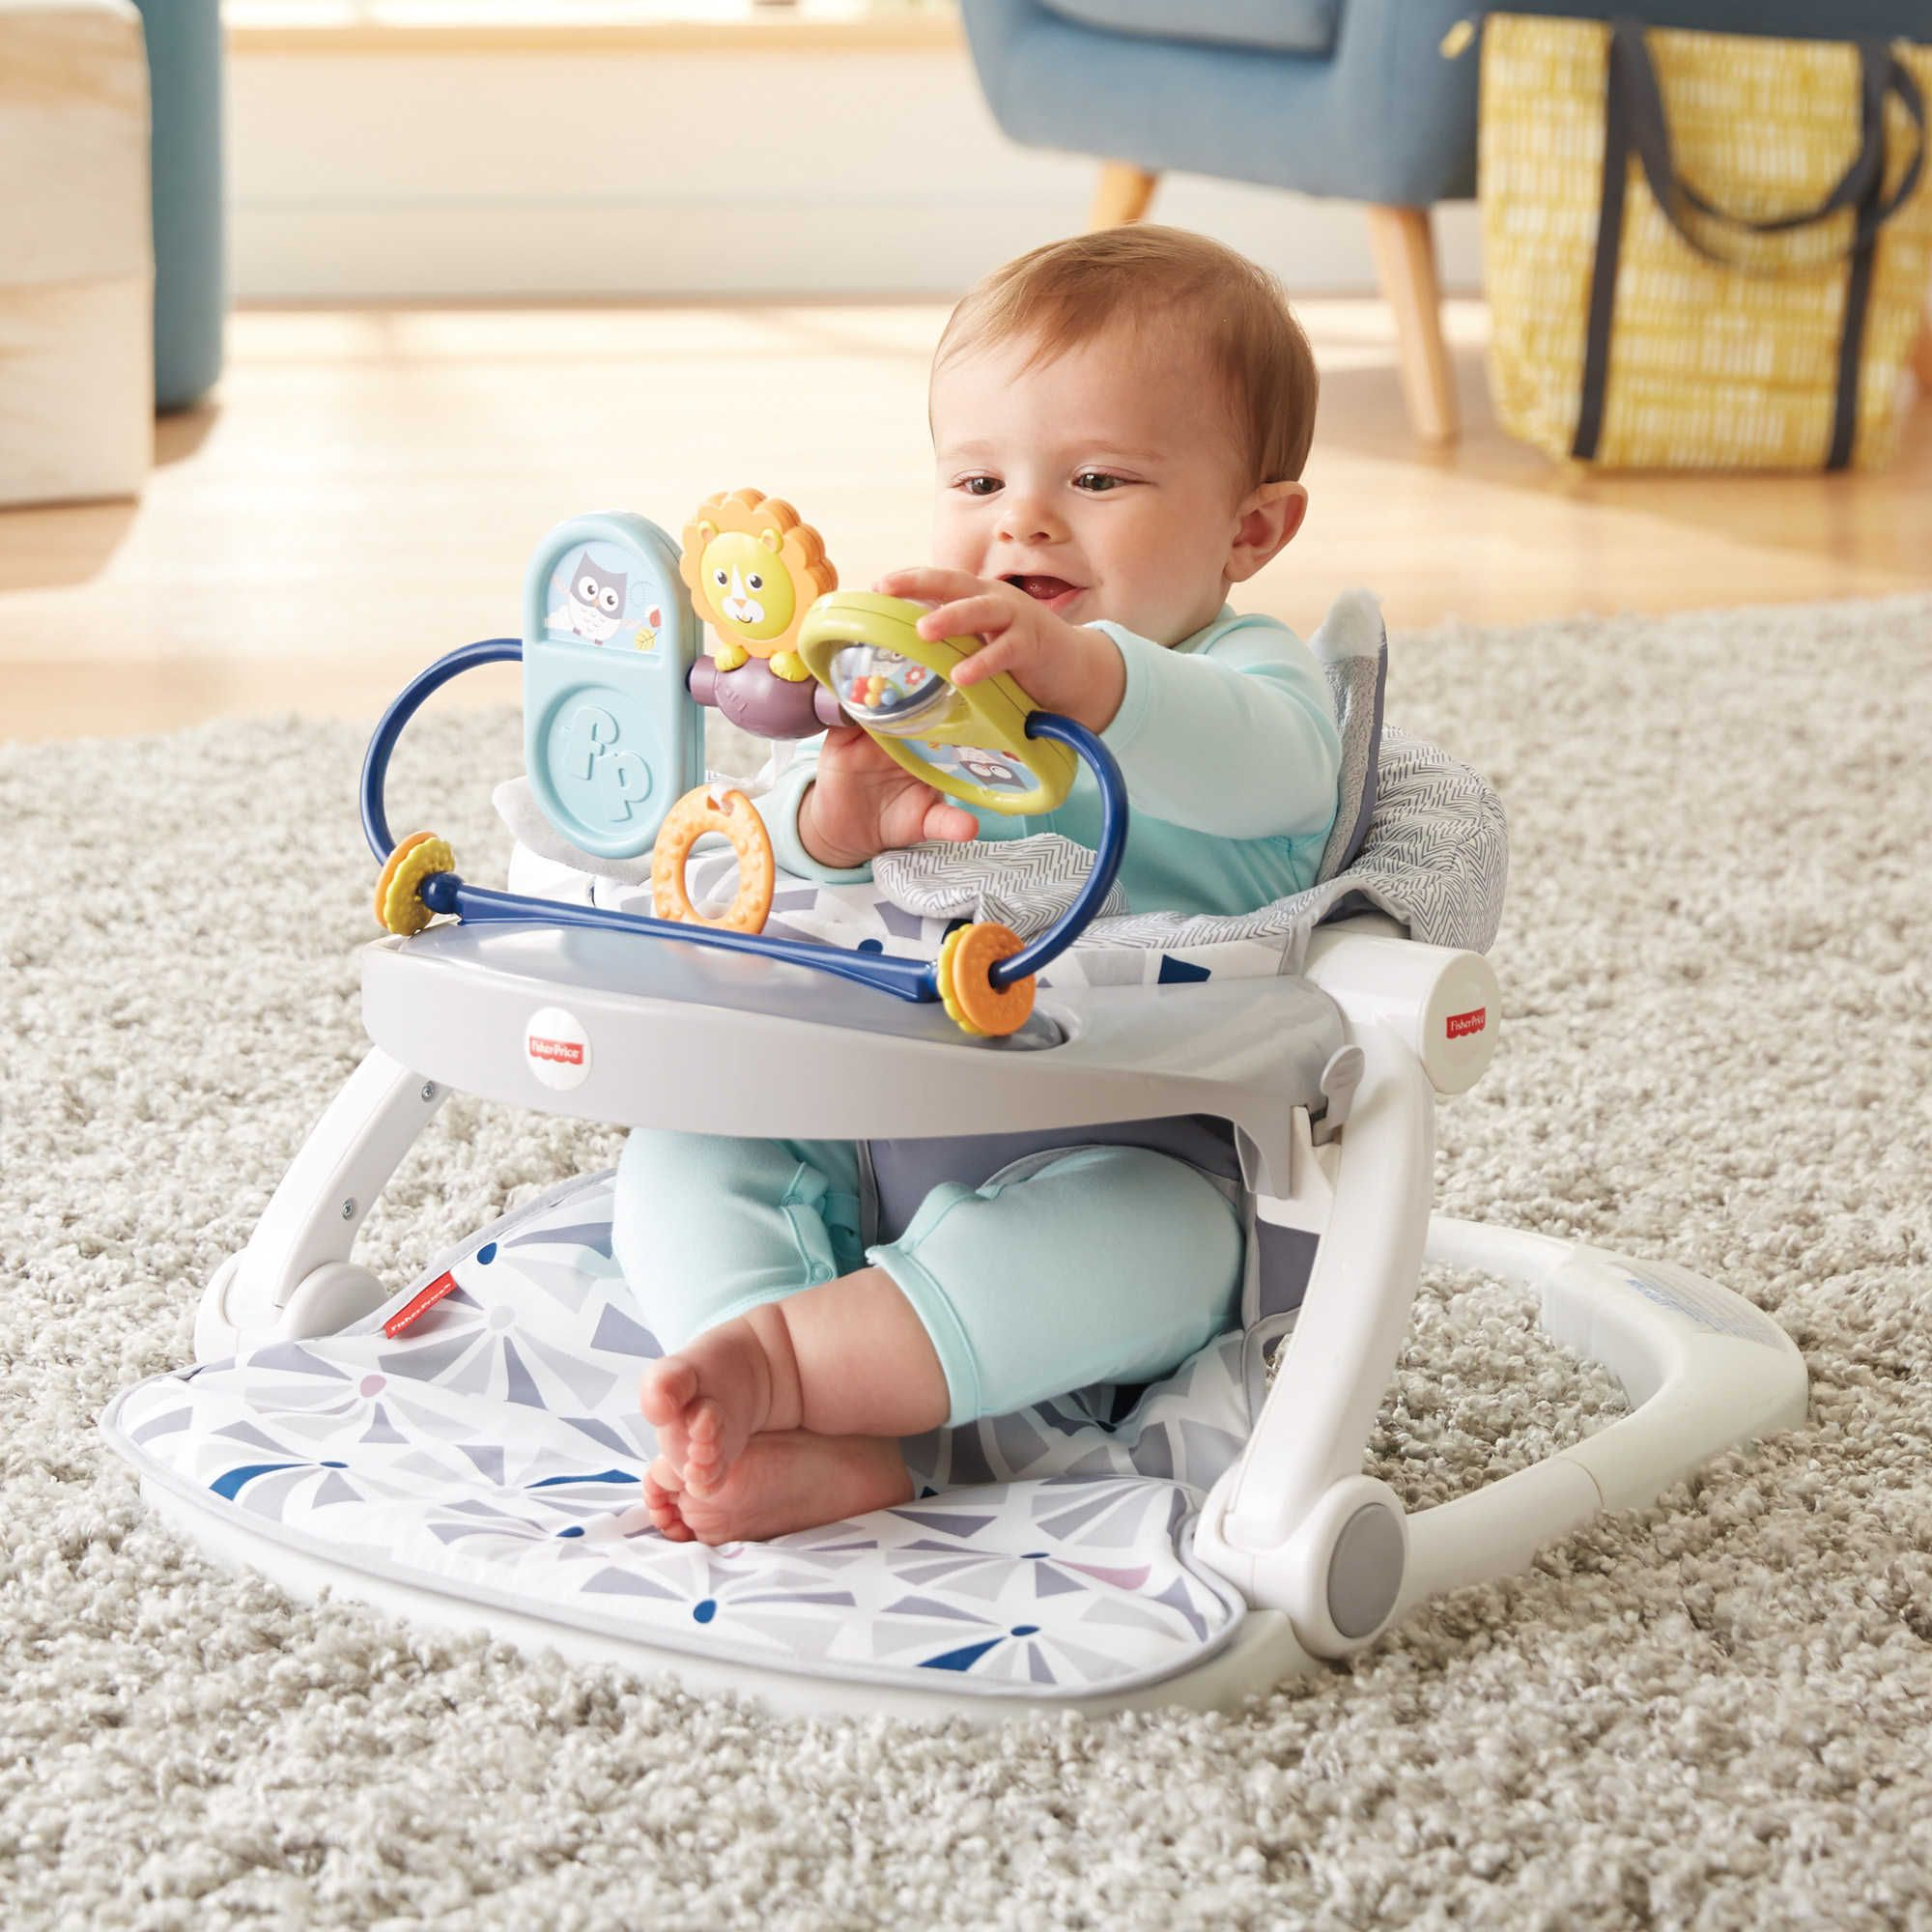 fisher price sit and play chair glider ottoman covers owl me up floor seat baby stuff